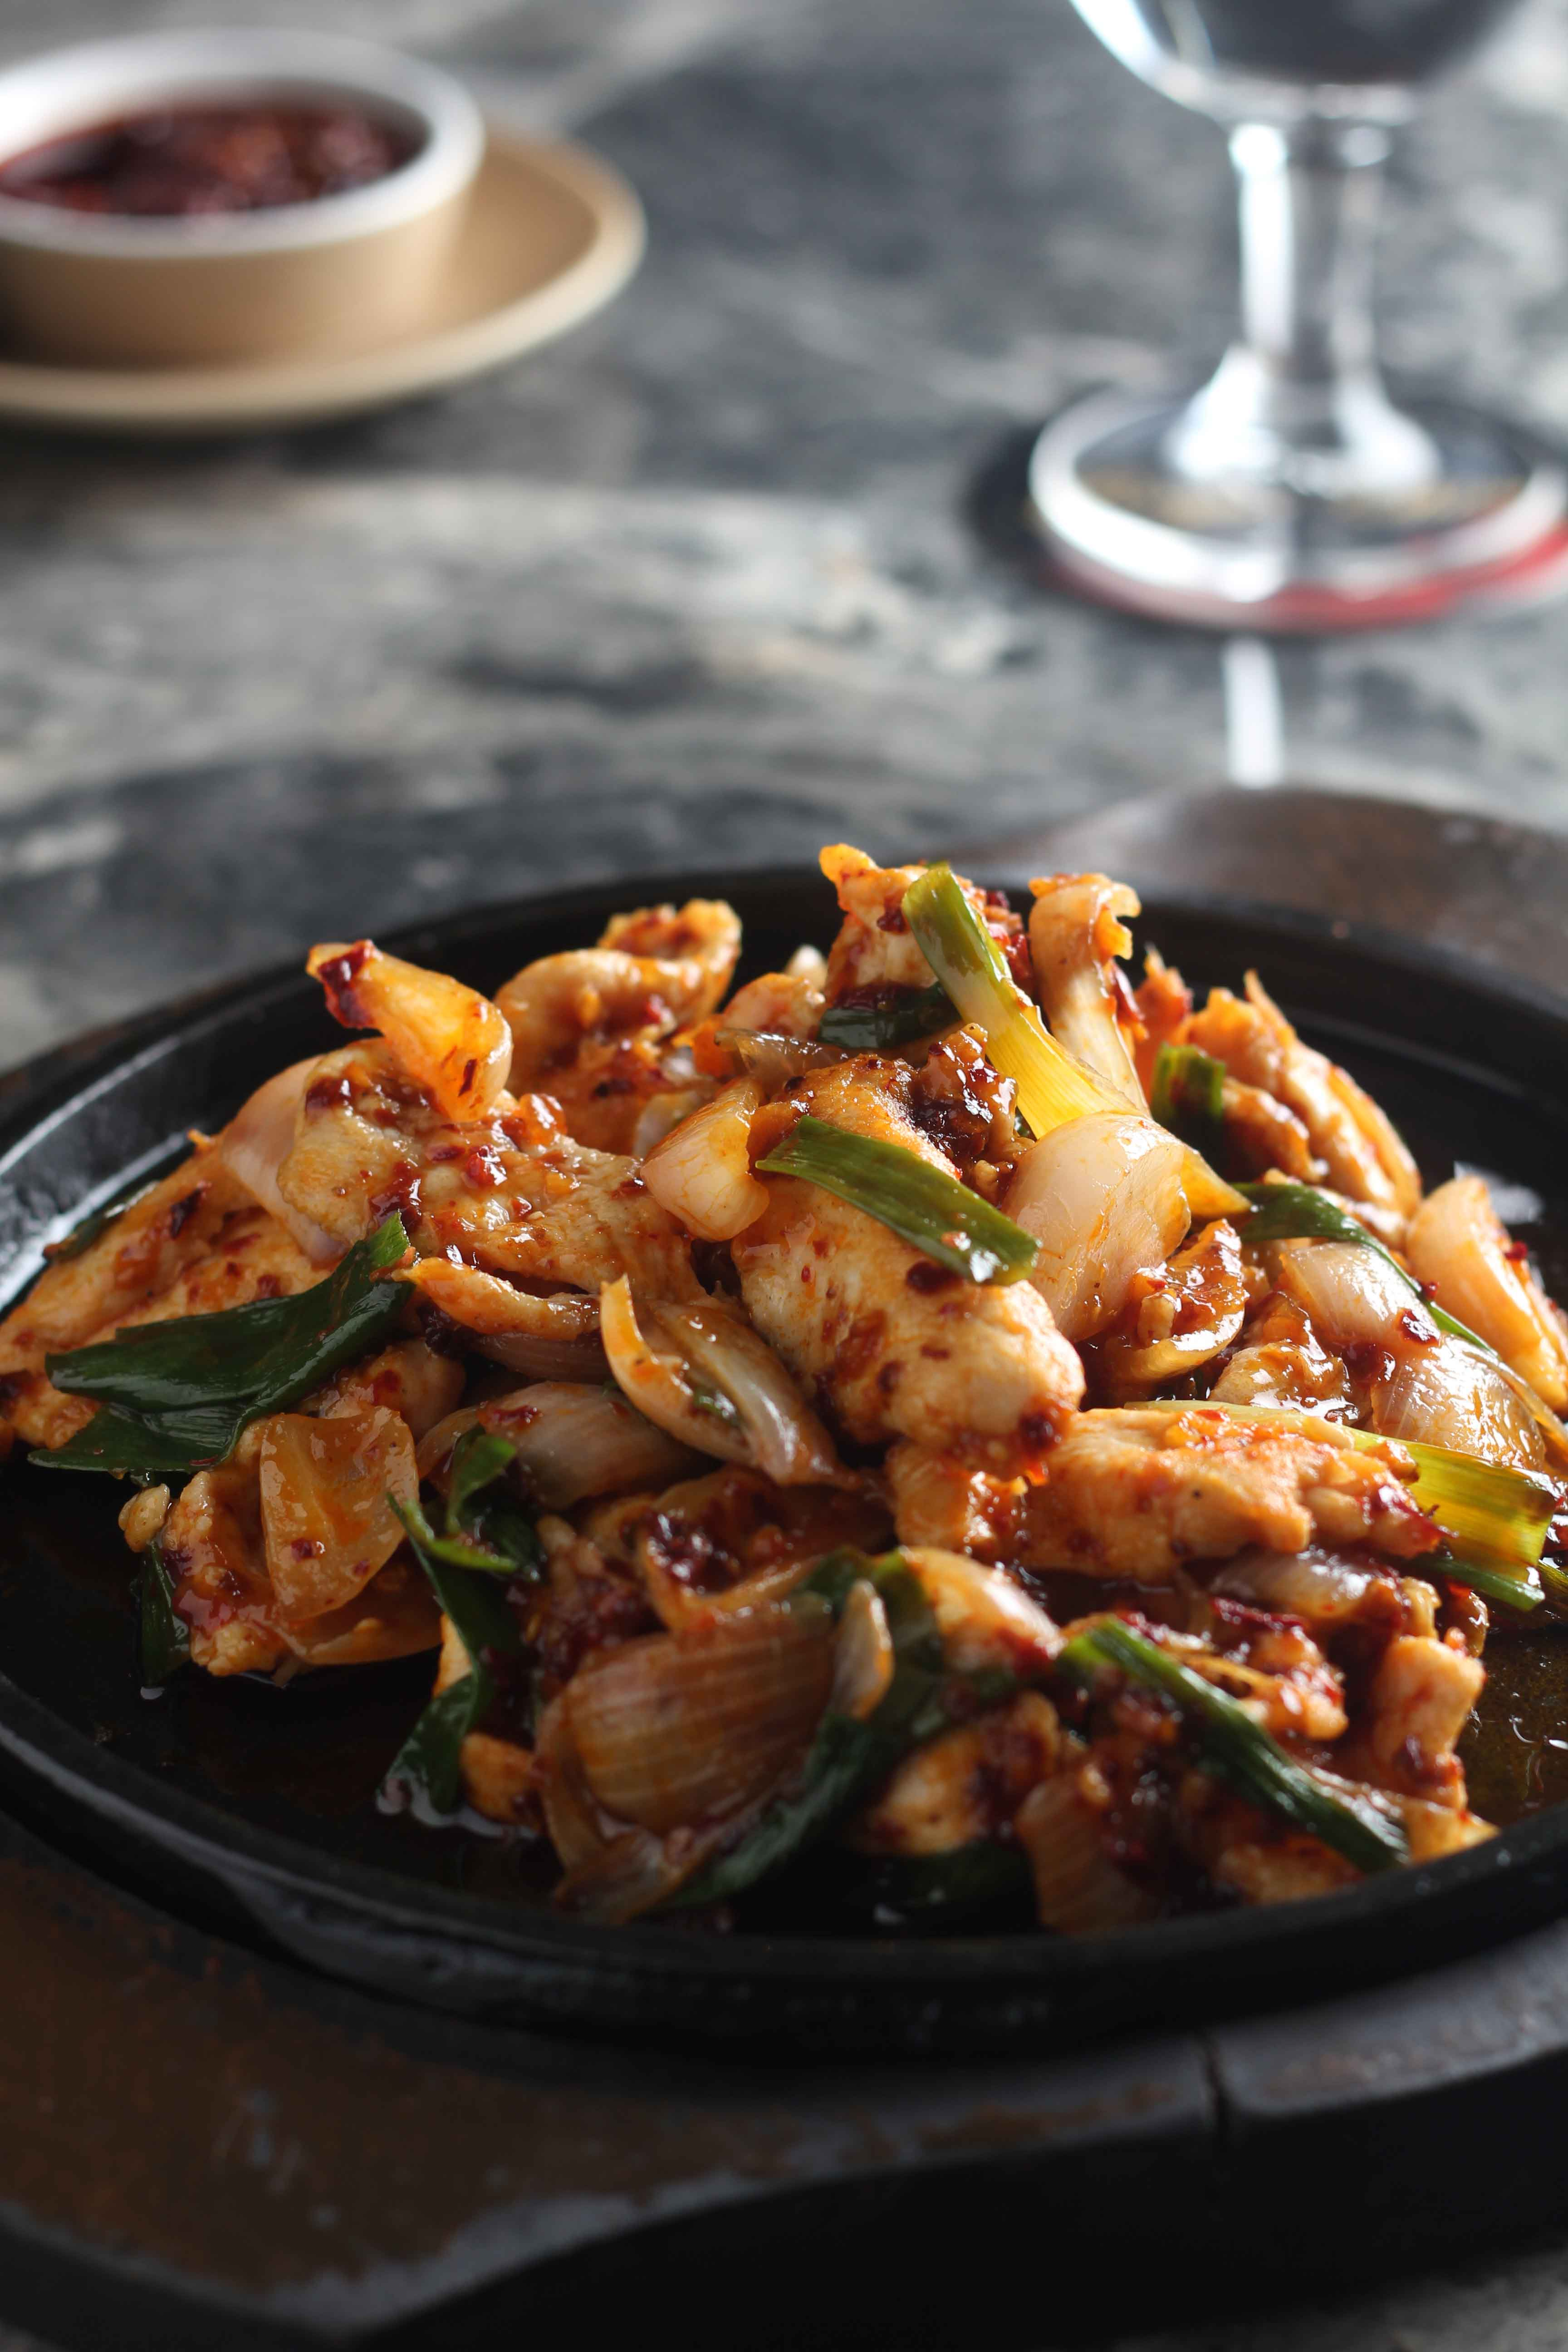 Chicken-in-Chilli-oil-and-Spring-Onion